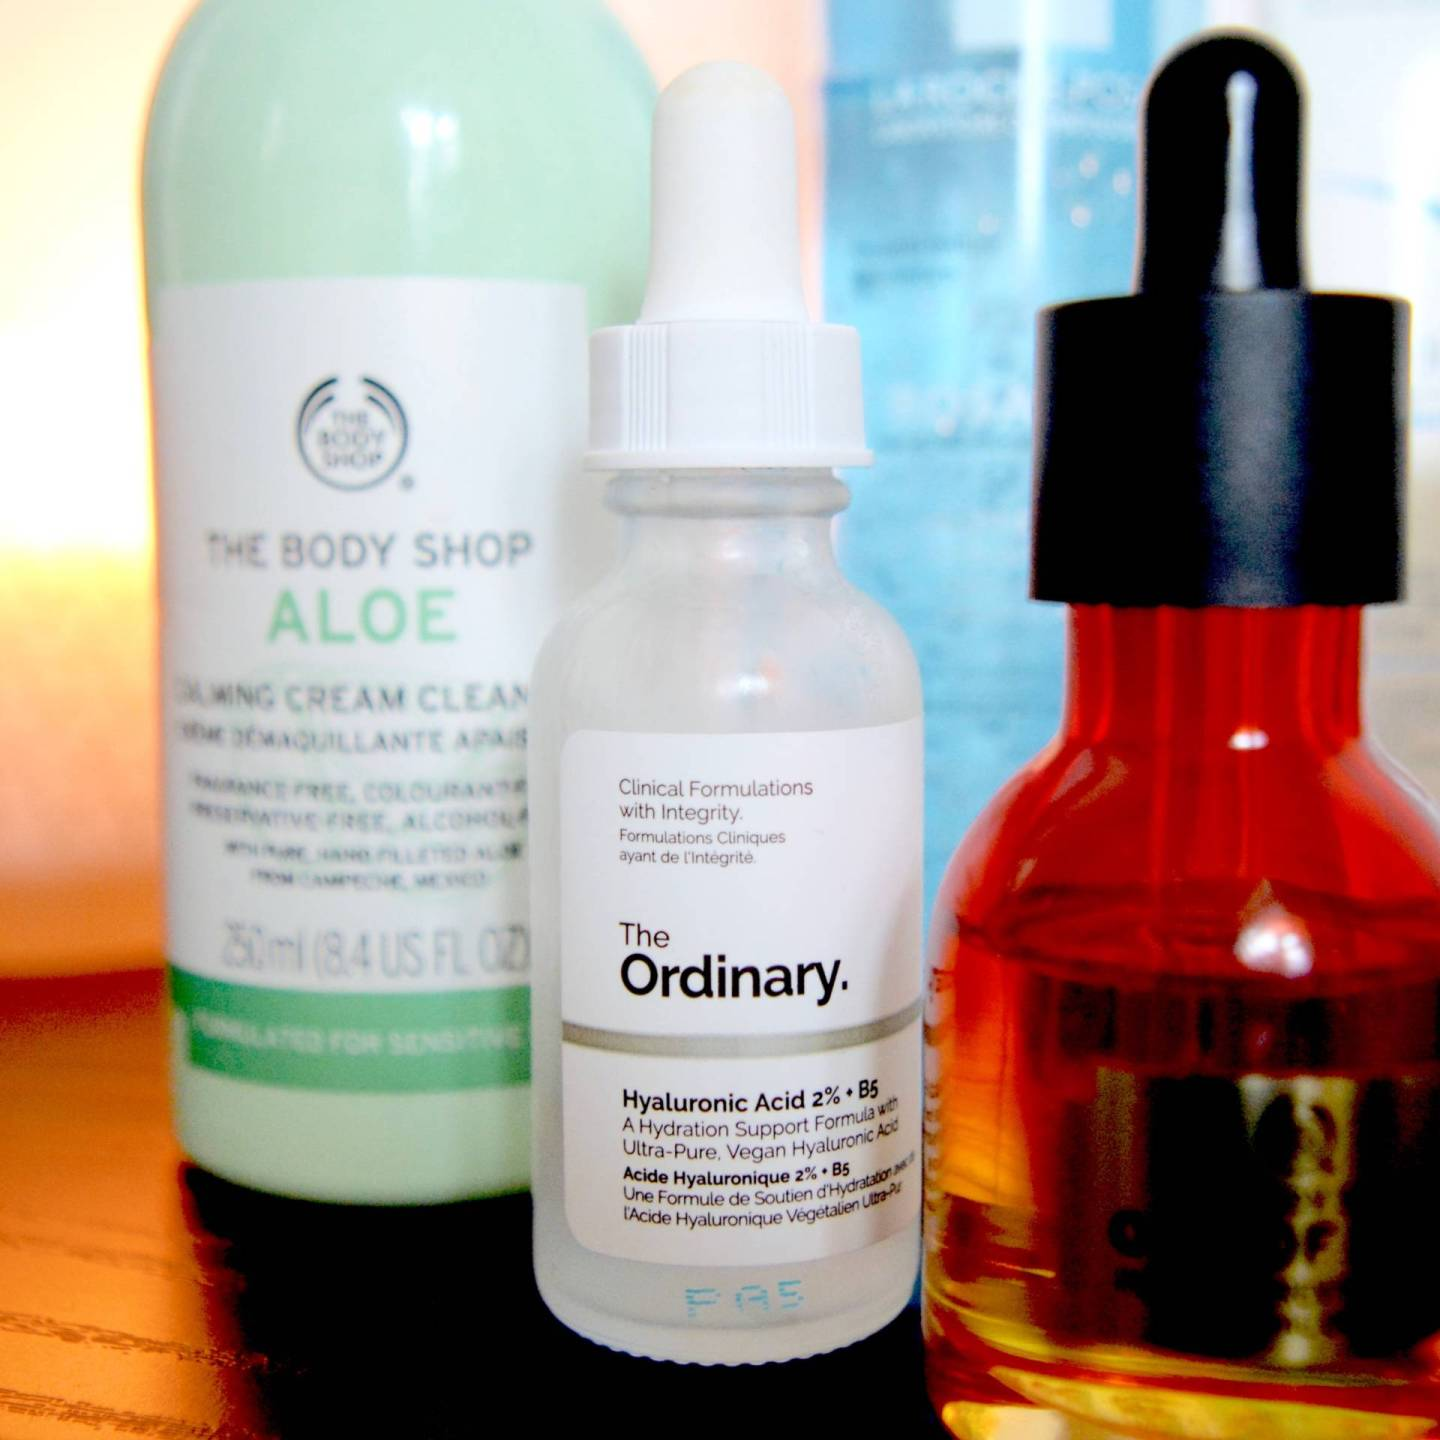 Skincare for rosacea and sensitive skin - The Ordinary Hyaluronic Acid 2% + B5